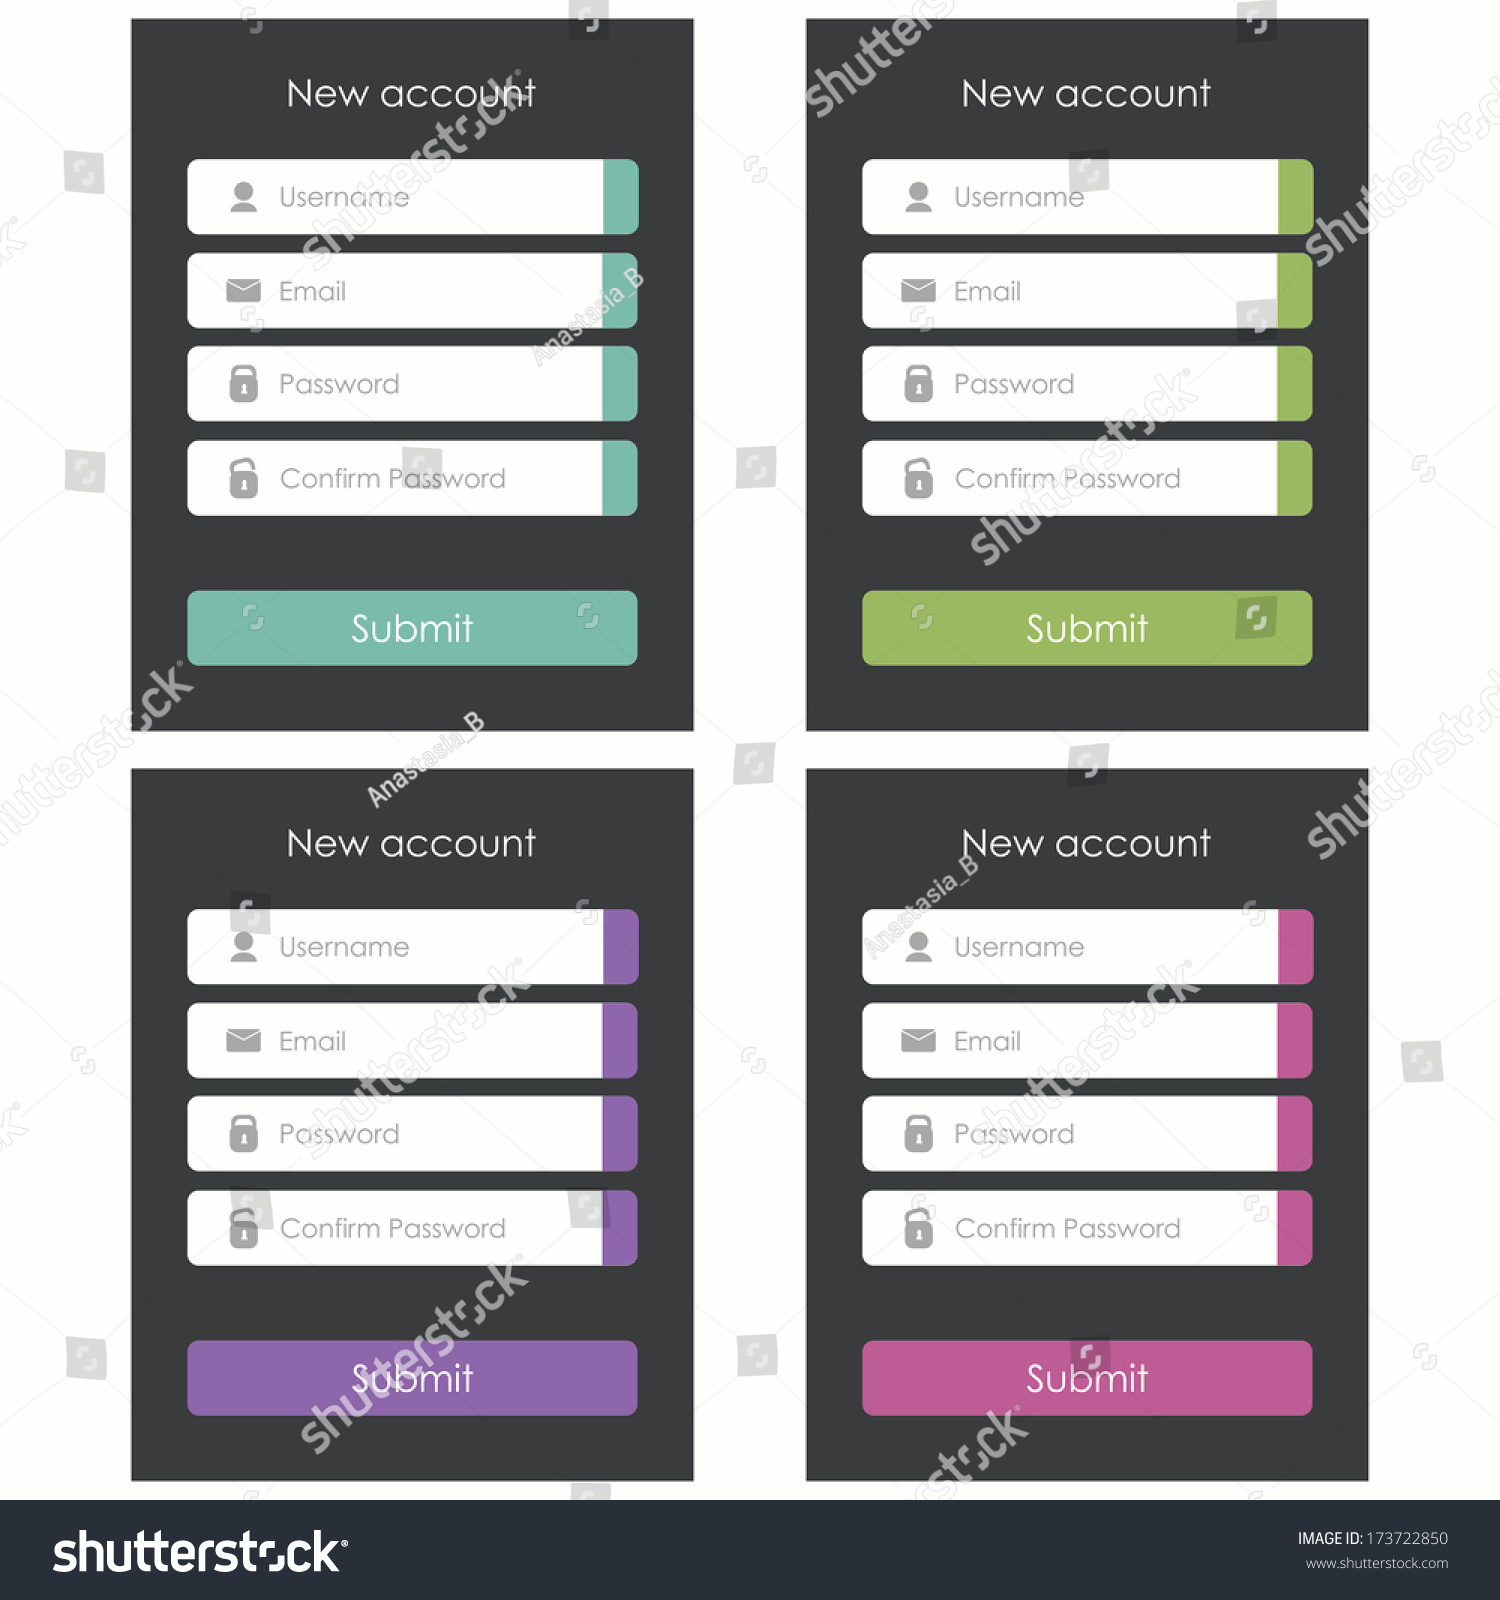 Registration form flat design template website stock for Mobile app privacy policy template